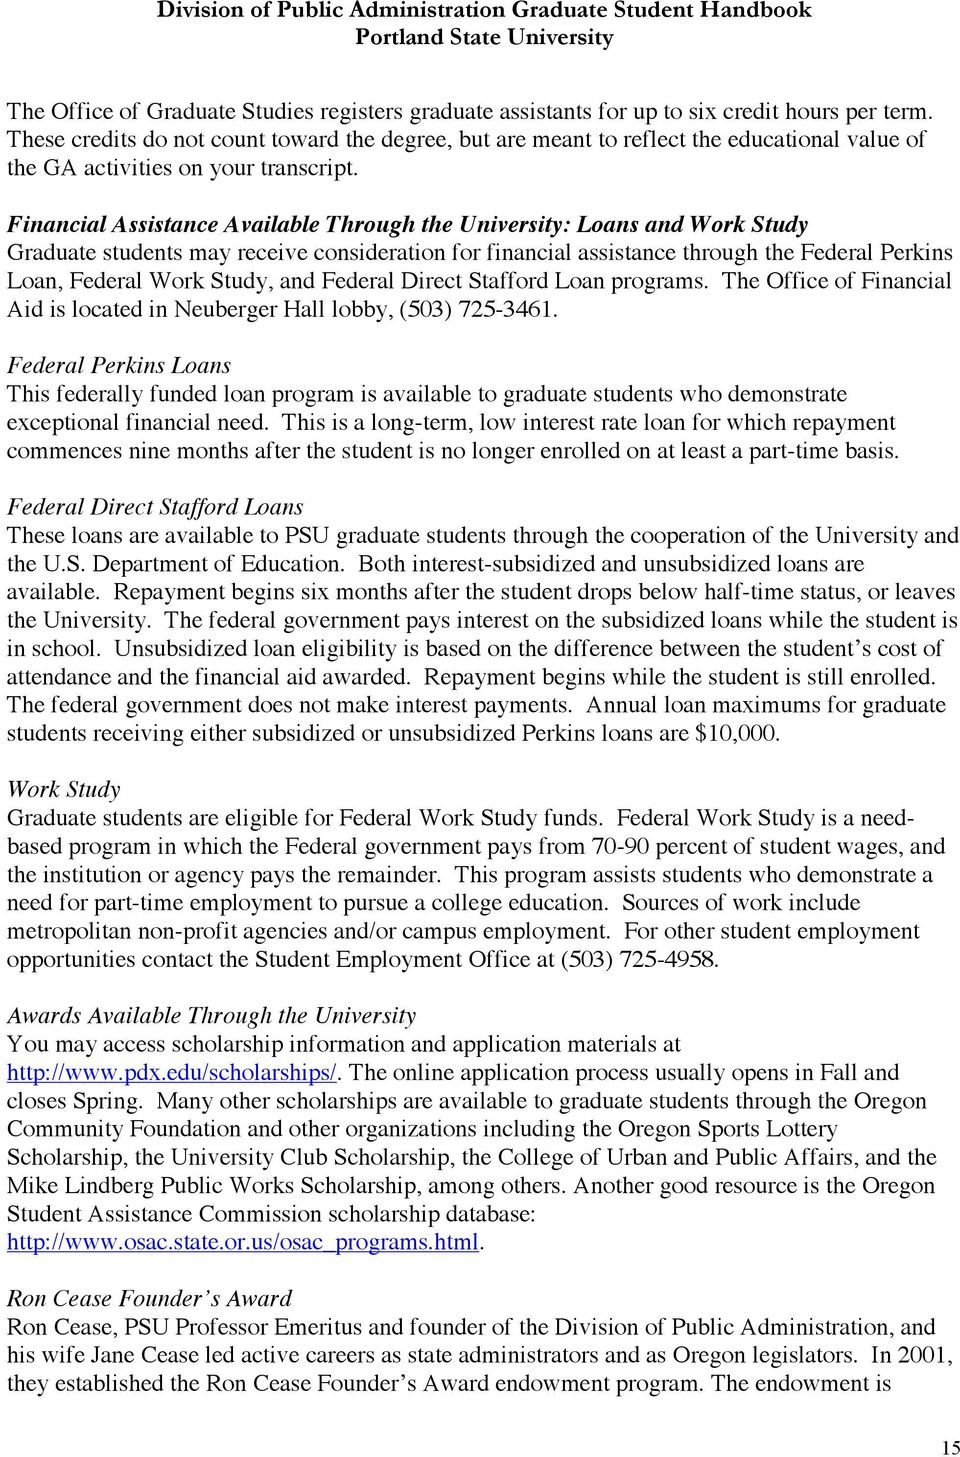 Financial Assistance Available Through the University: Loans and Work Study Graduate students may receive consideration for financial assistance through the Federal Perkins Loan, Federal Work Study,